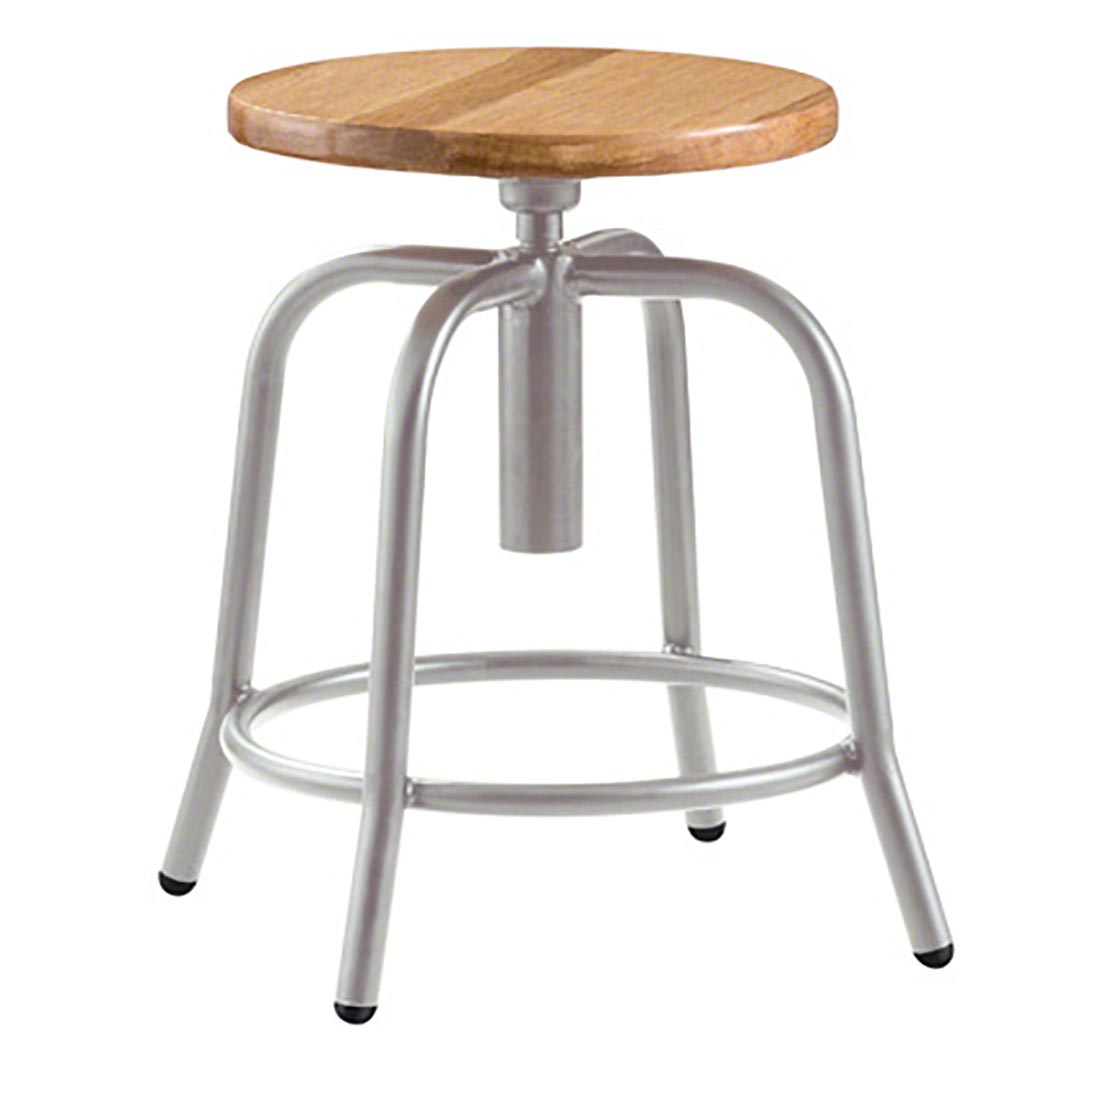 Portable Stool National Public Seating 6800 Series Science Lab Adjustable Height